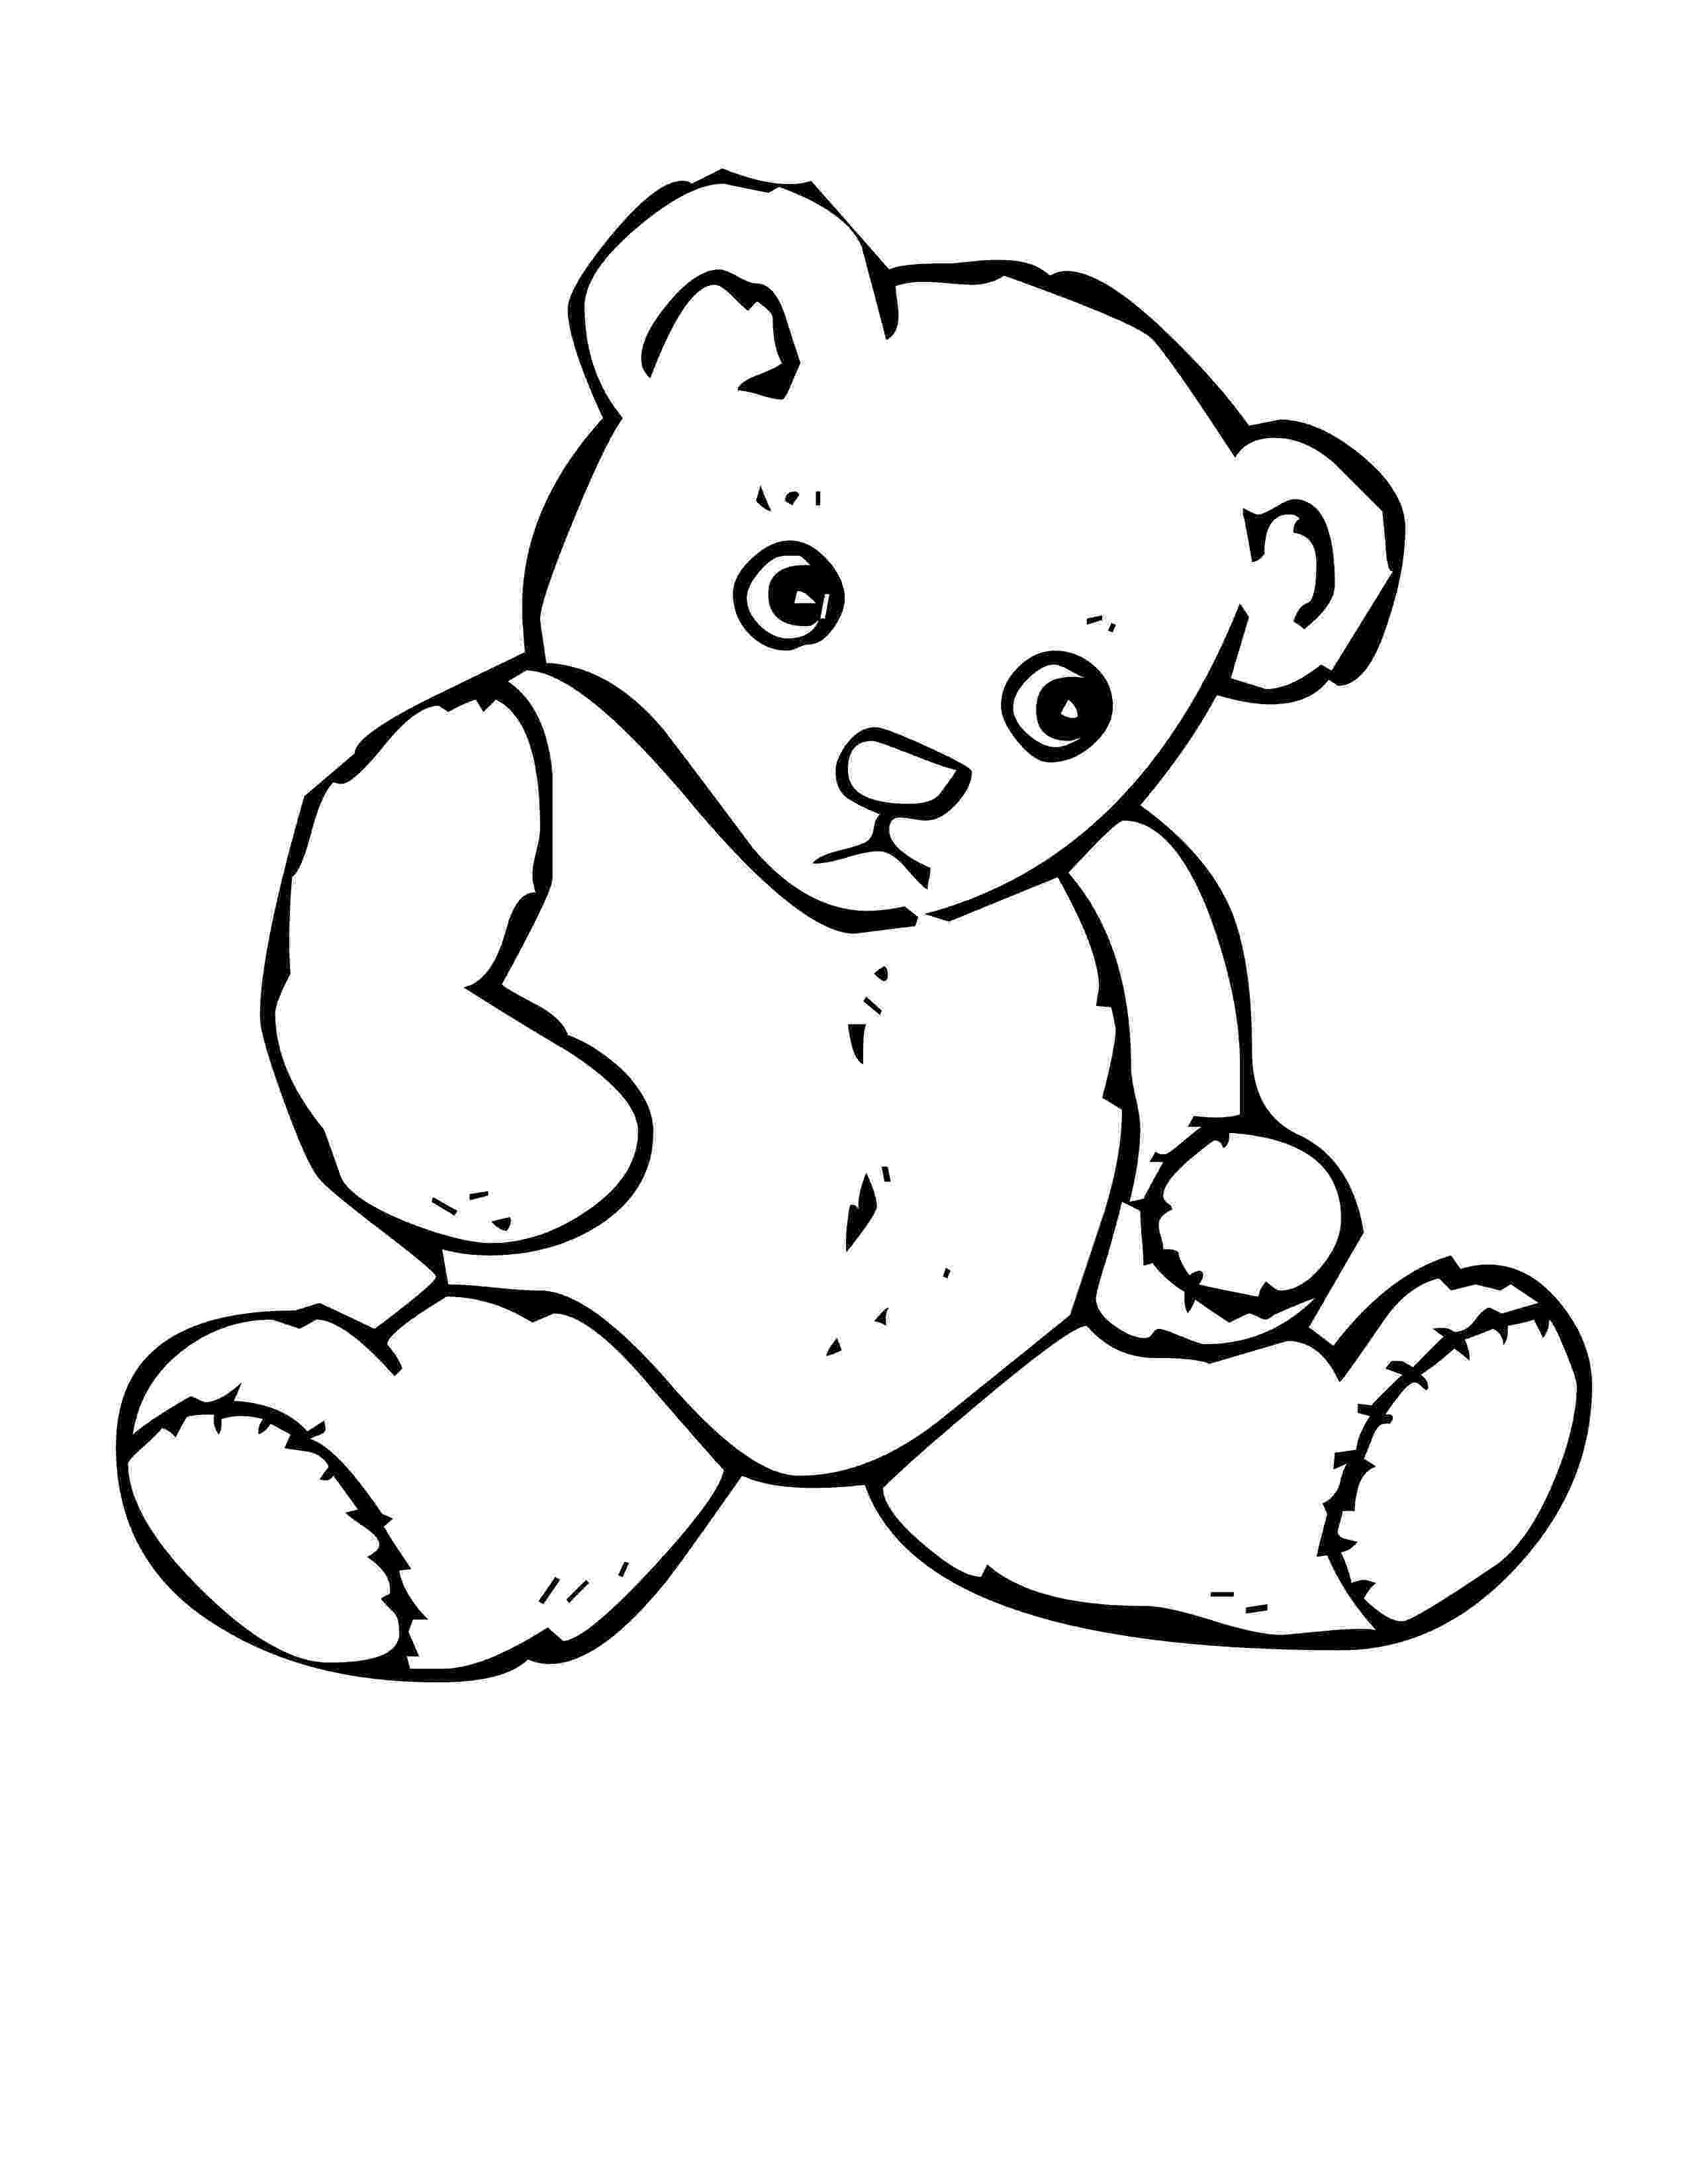 coloring sheet teddy bear 9 teddy bear coloring pages jpg ai illustrator download bear coloring teddy sheet